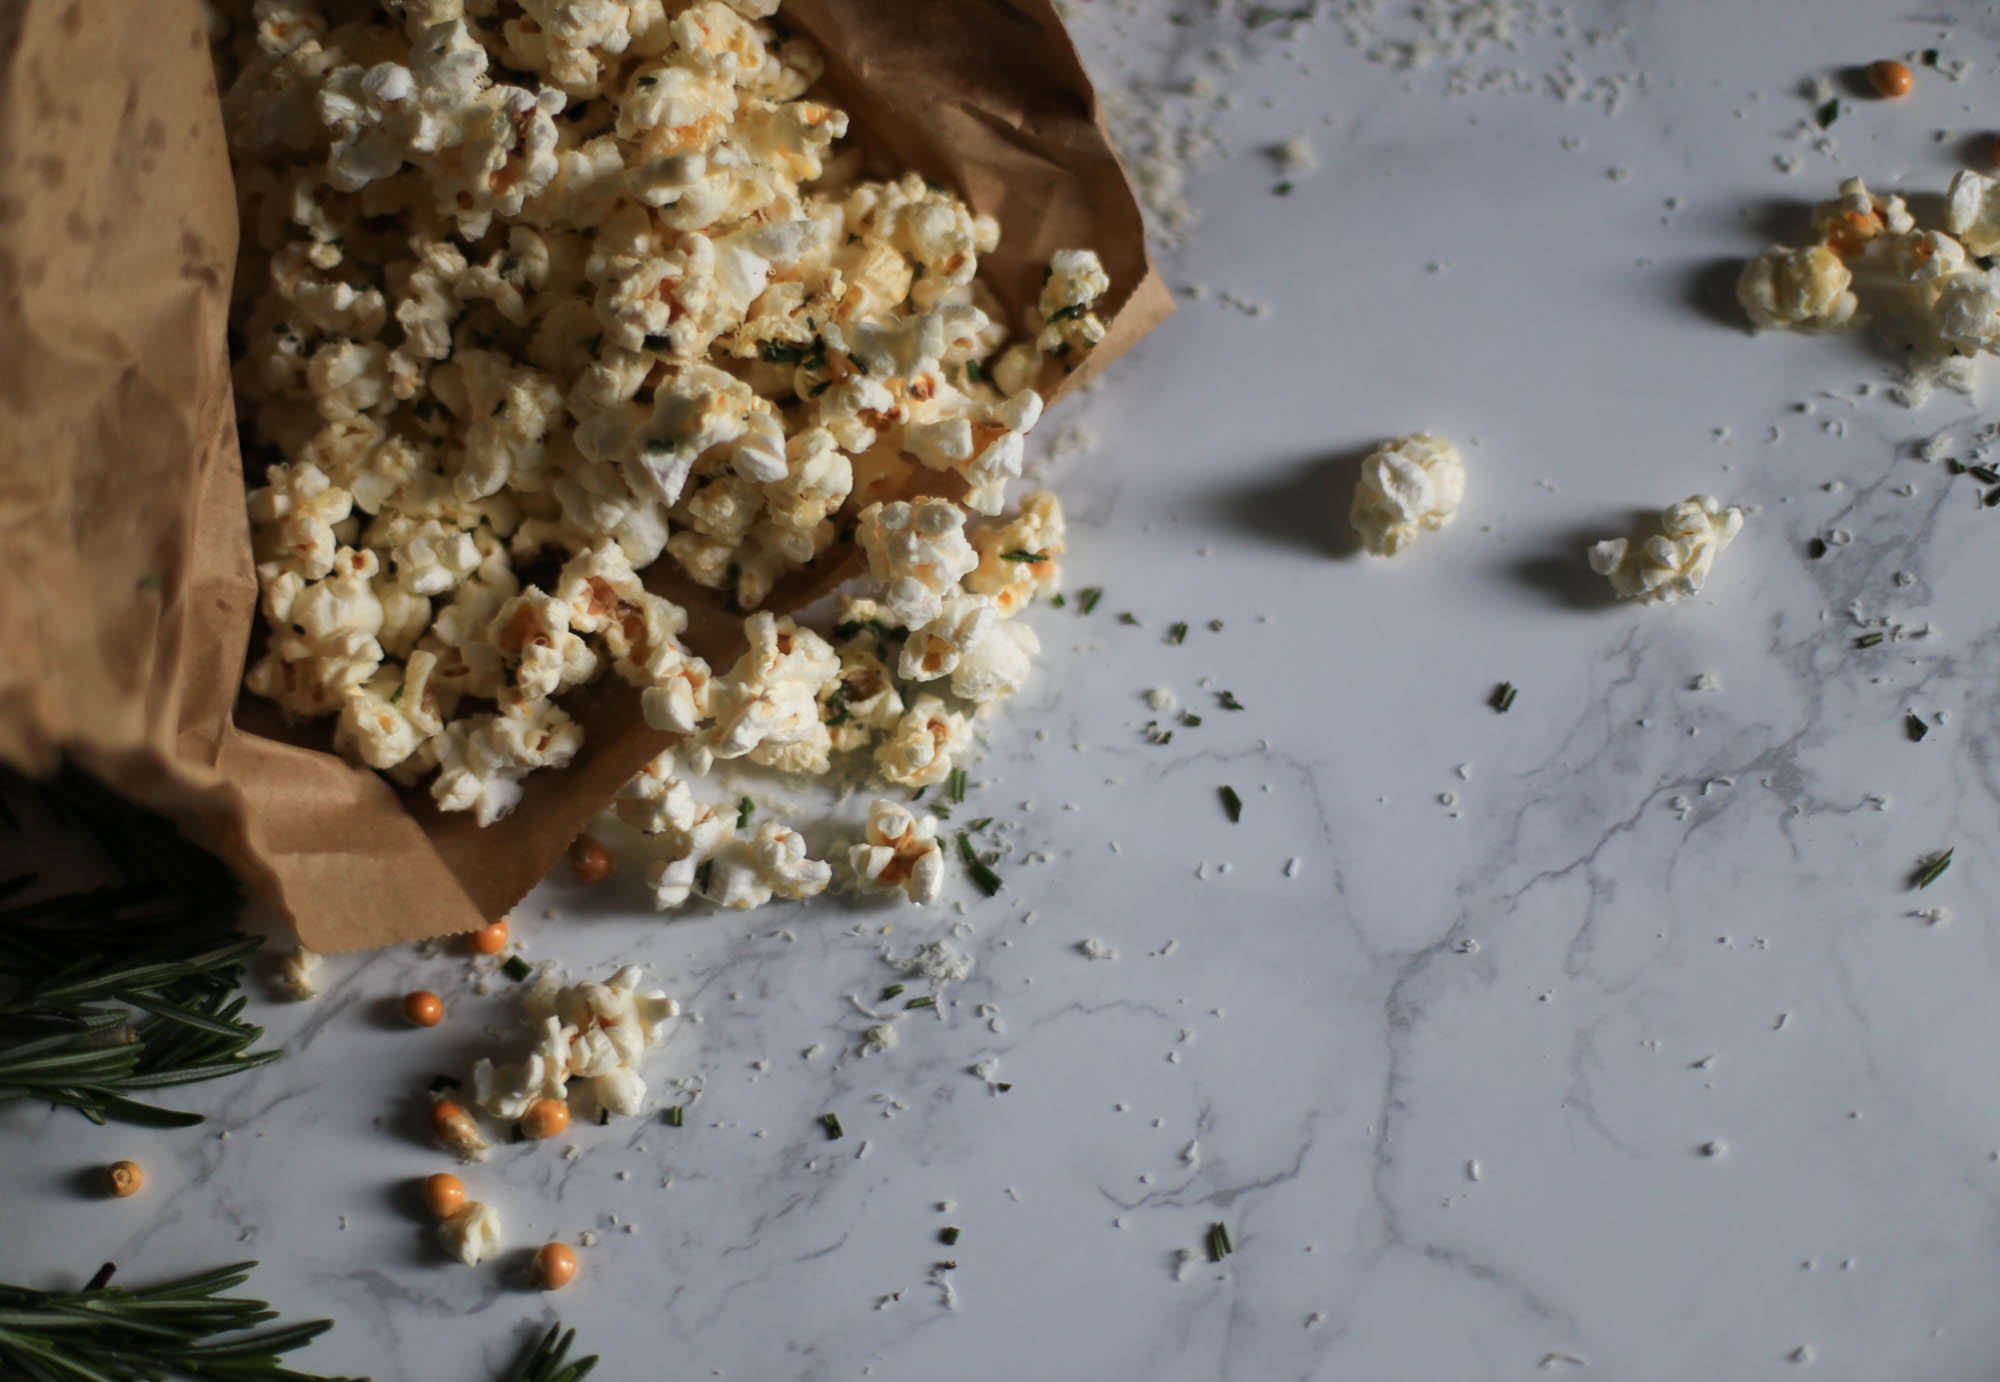 Rosemary Parmesan Popcorn by The District Table